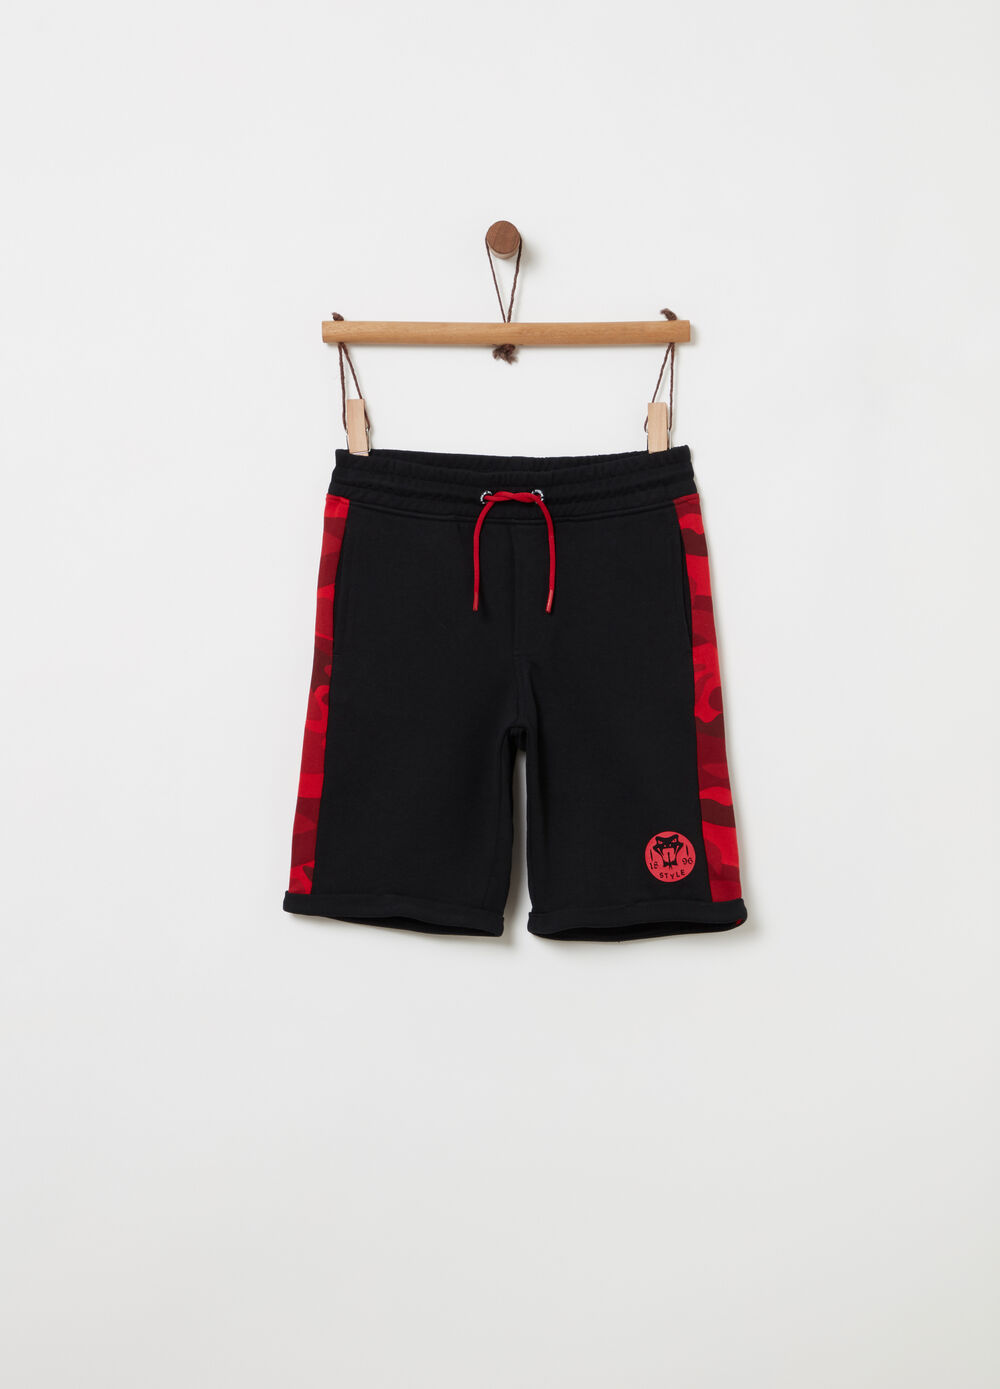 Shorts French Terry bande camouflage